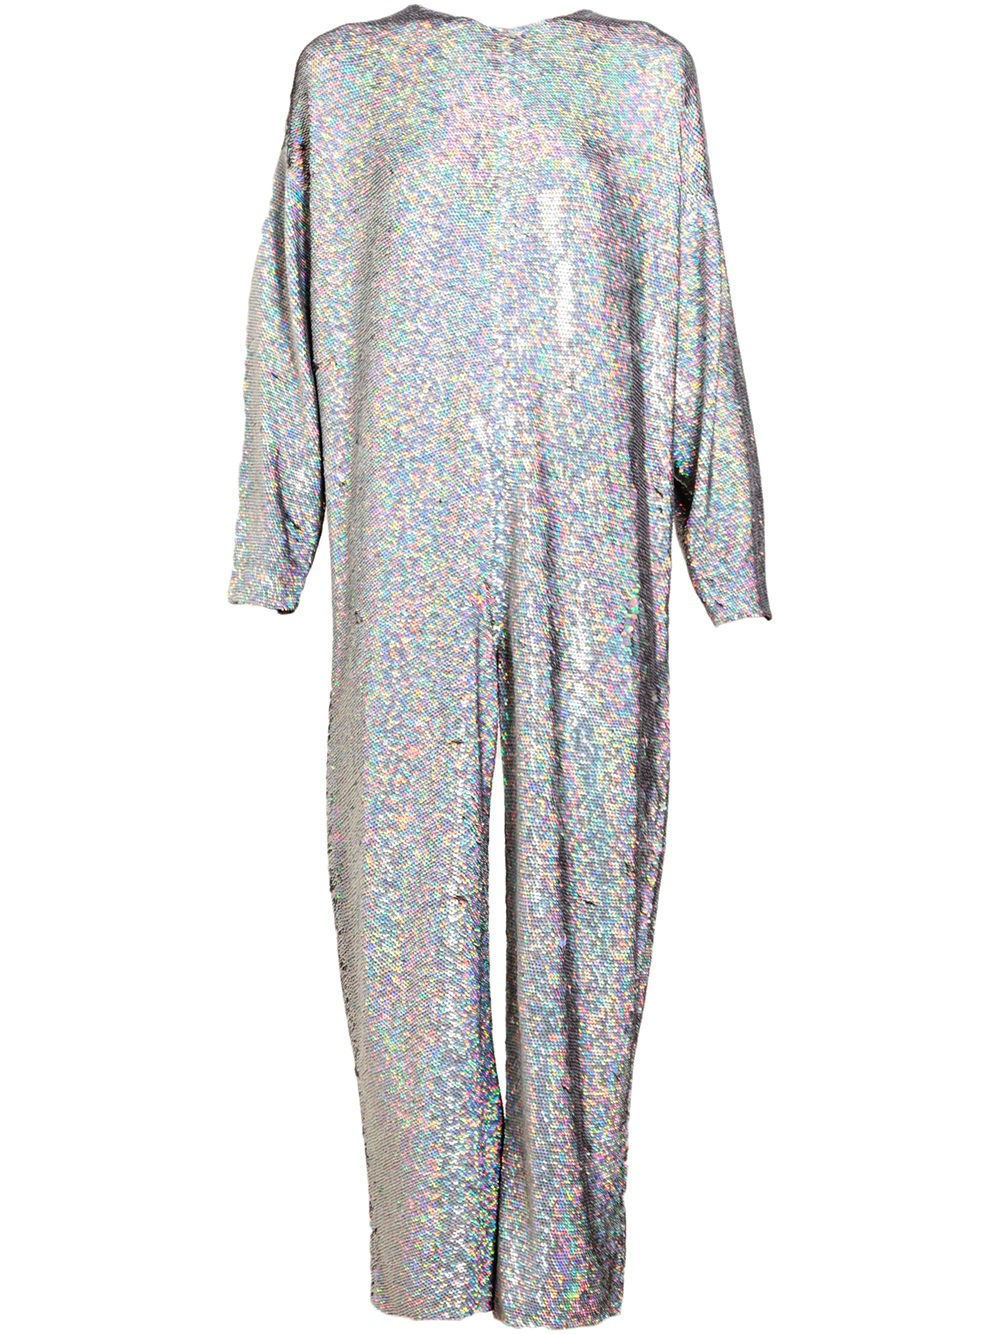 Lyst - Ashish Holographic Sequin Jumpsuit in Gray